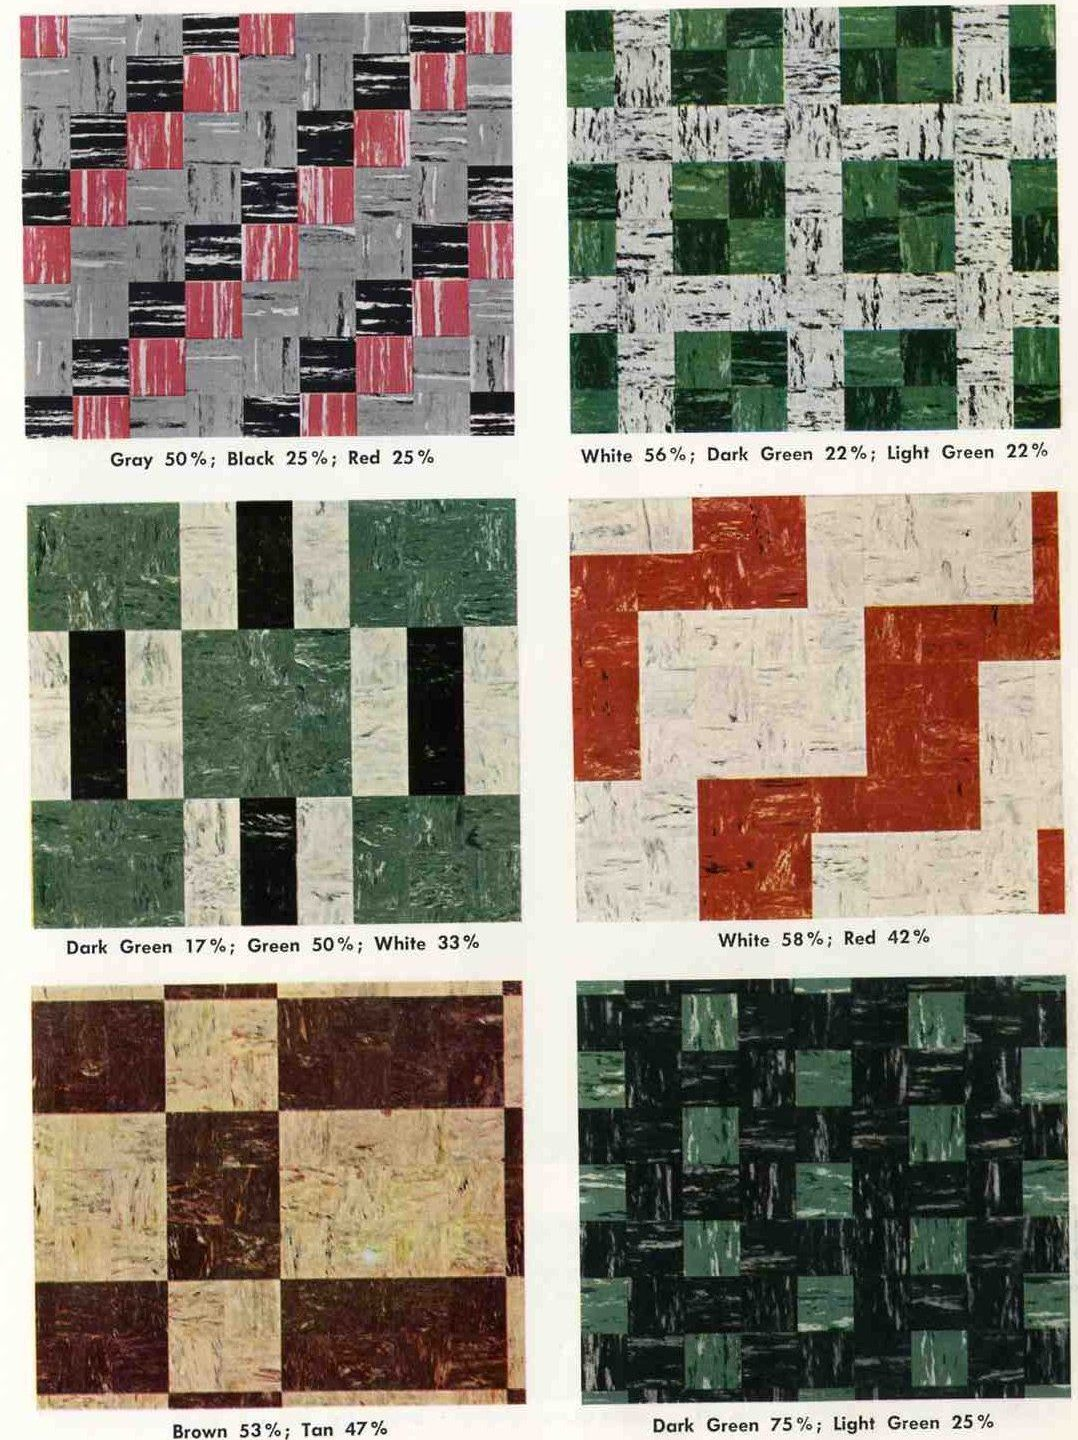 Patterns For Vinyl Floor Tiles From The S Belvidere - Black and white square vinyl flooring